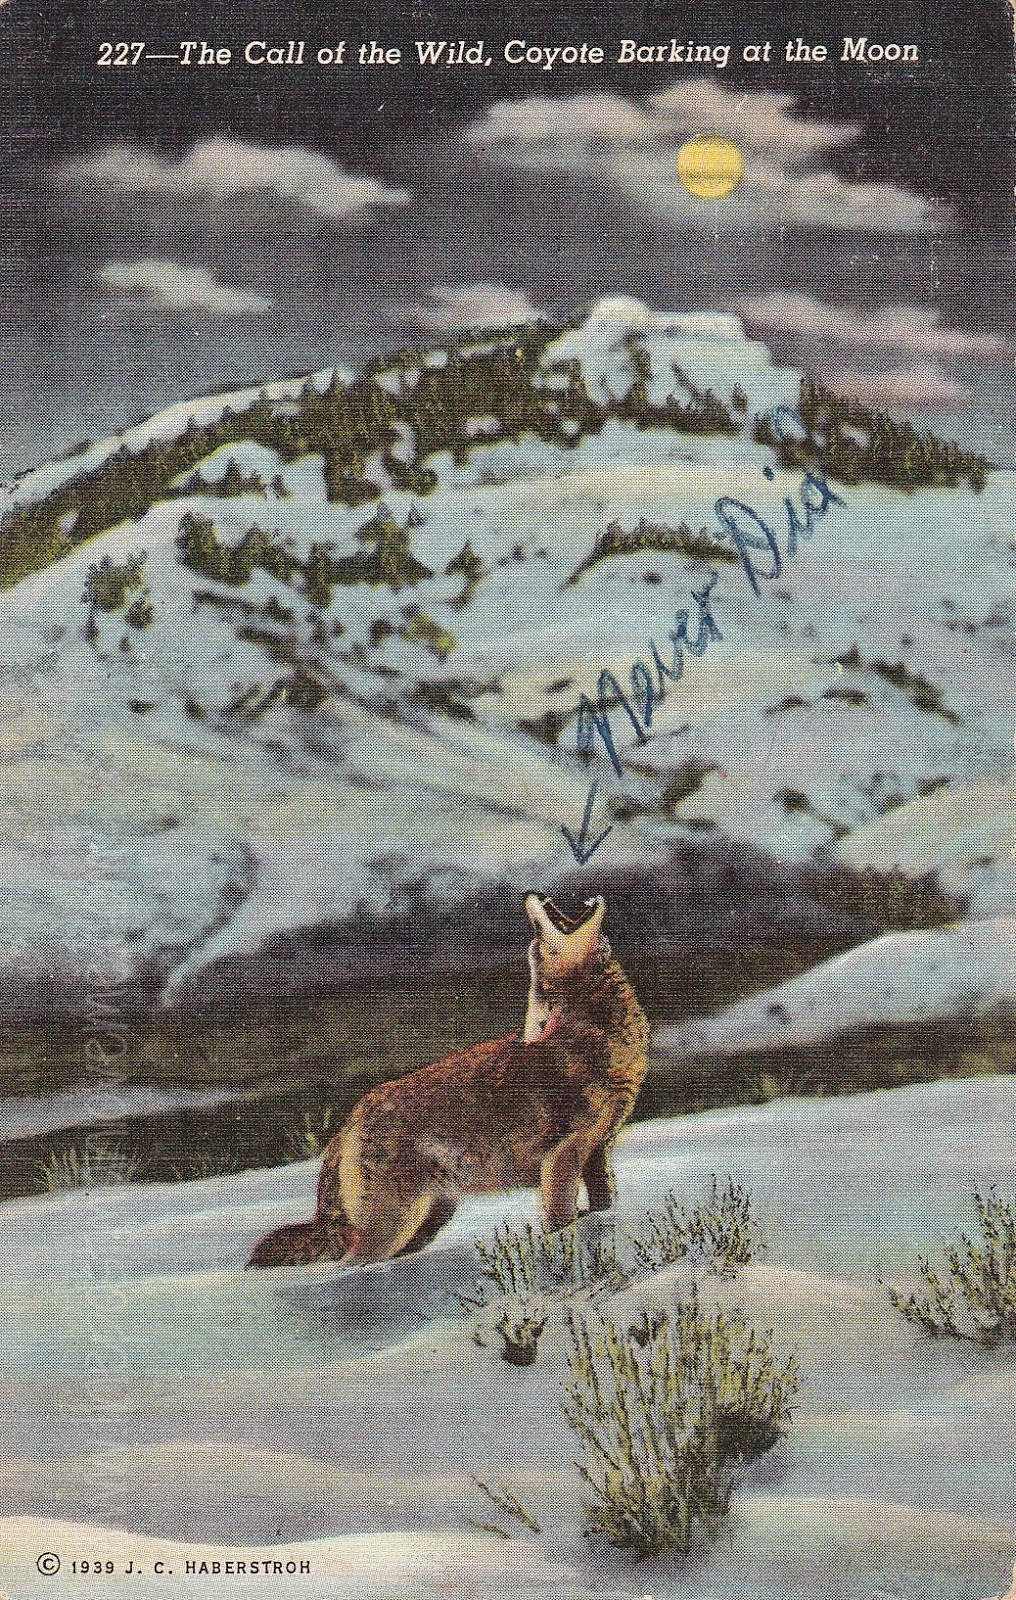 Call of the Wild - Coyote Barking at the Moon Vintage Postcard 8-1-1949